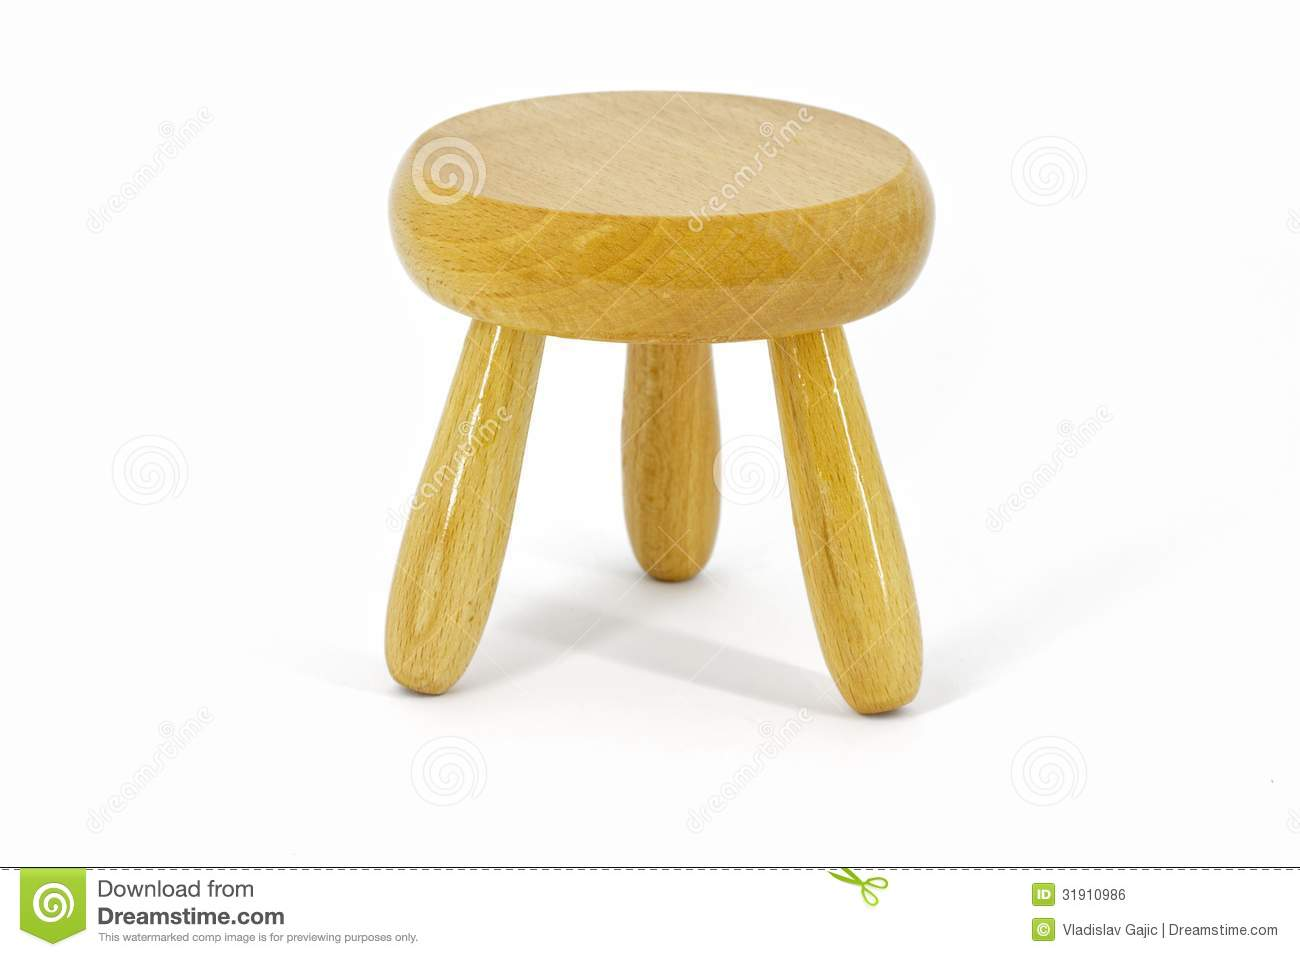 Stool Royalty Free Stock Image Image 31910986 : stool small wooden isolated white 31910986 from www.dreamstime.com size 1300 x 957 jpeg 54kB